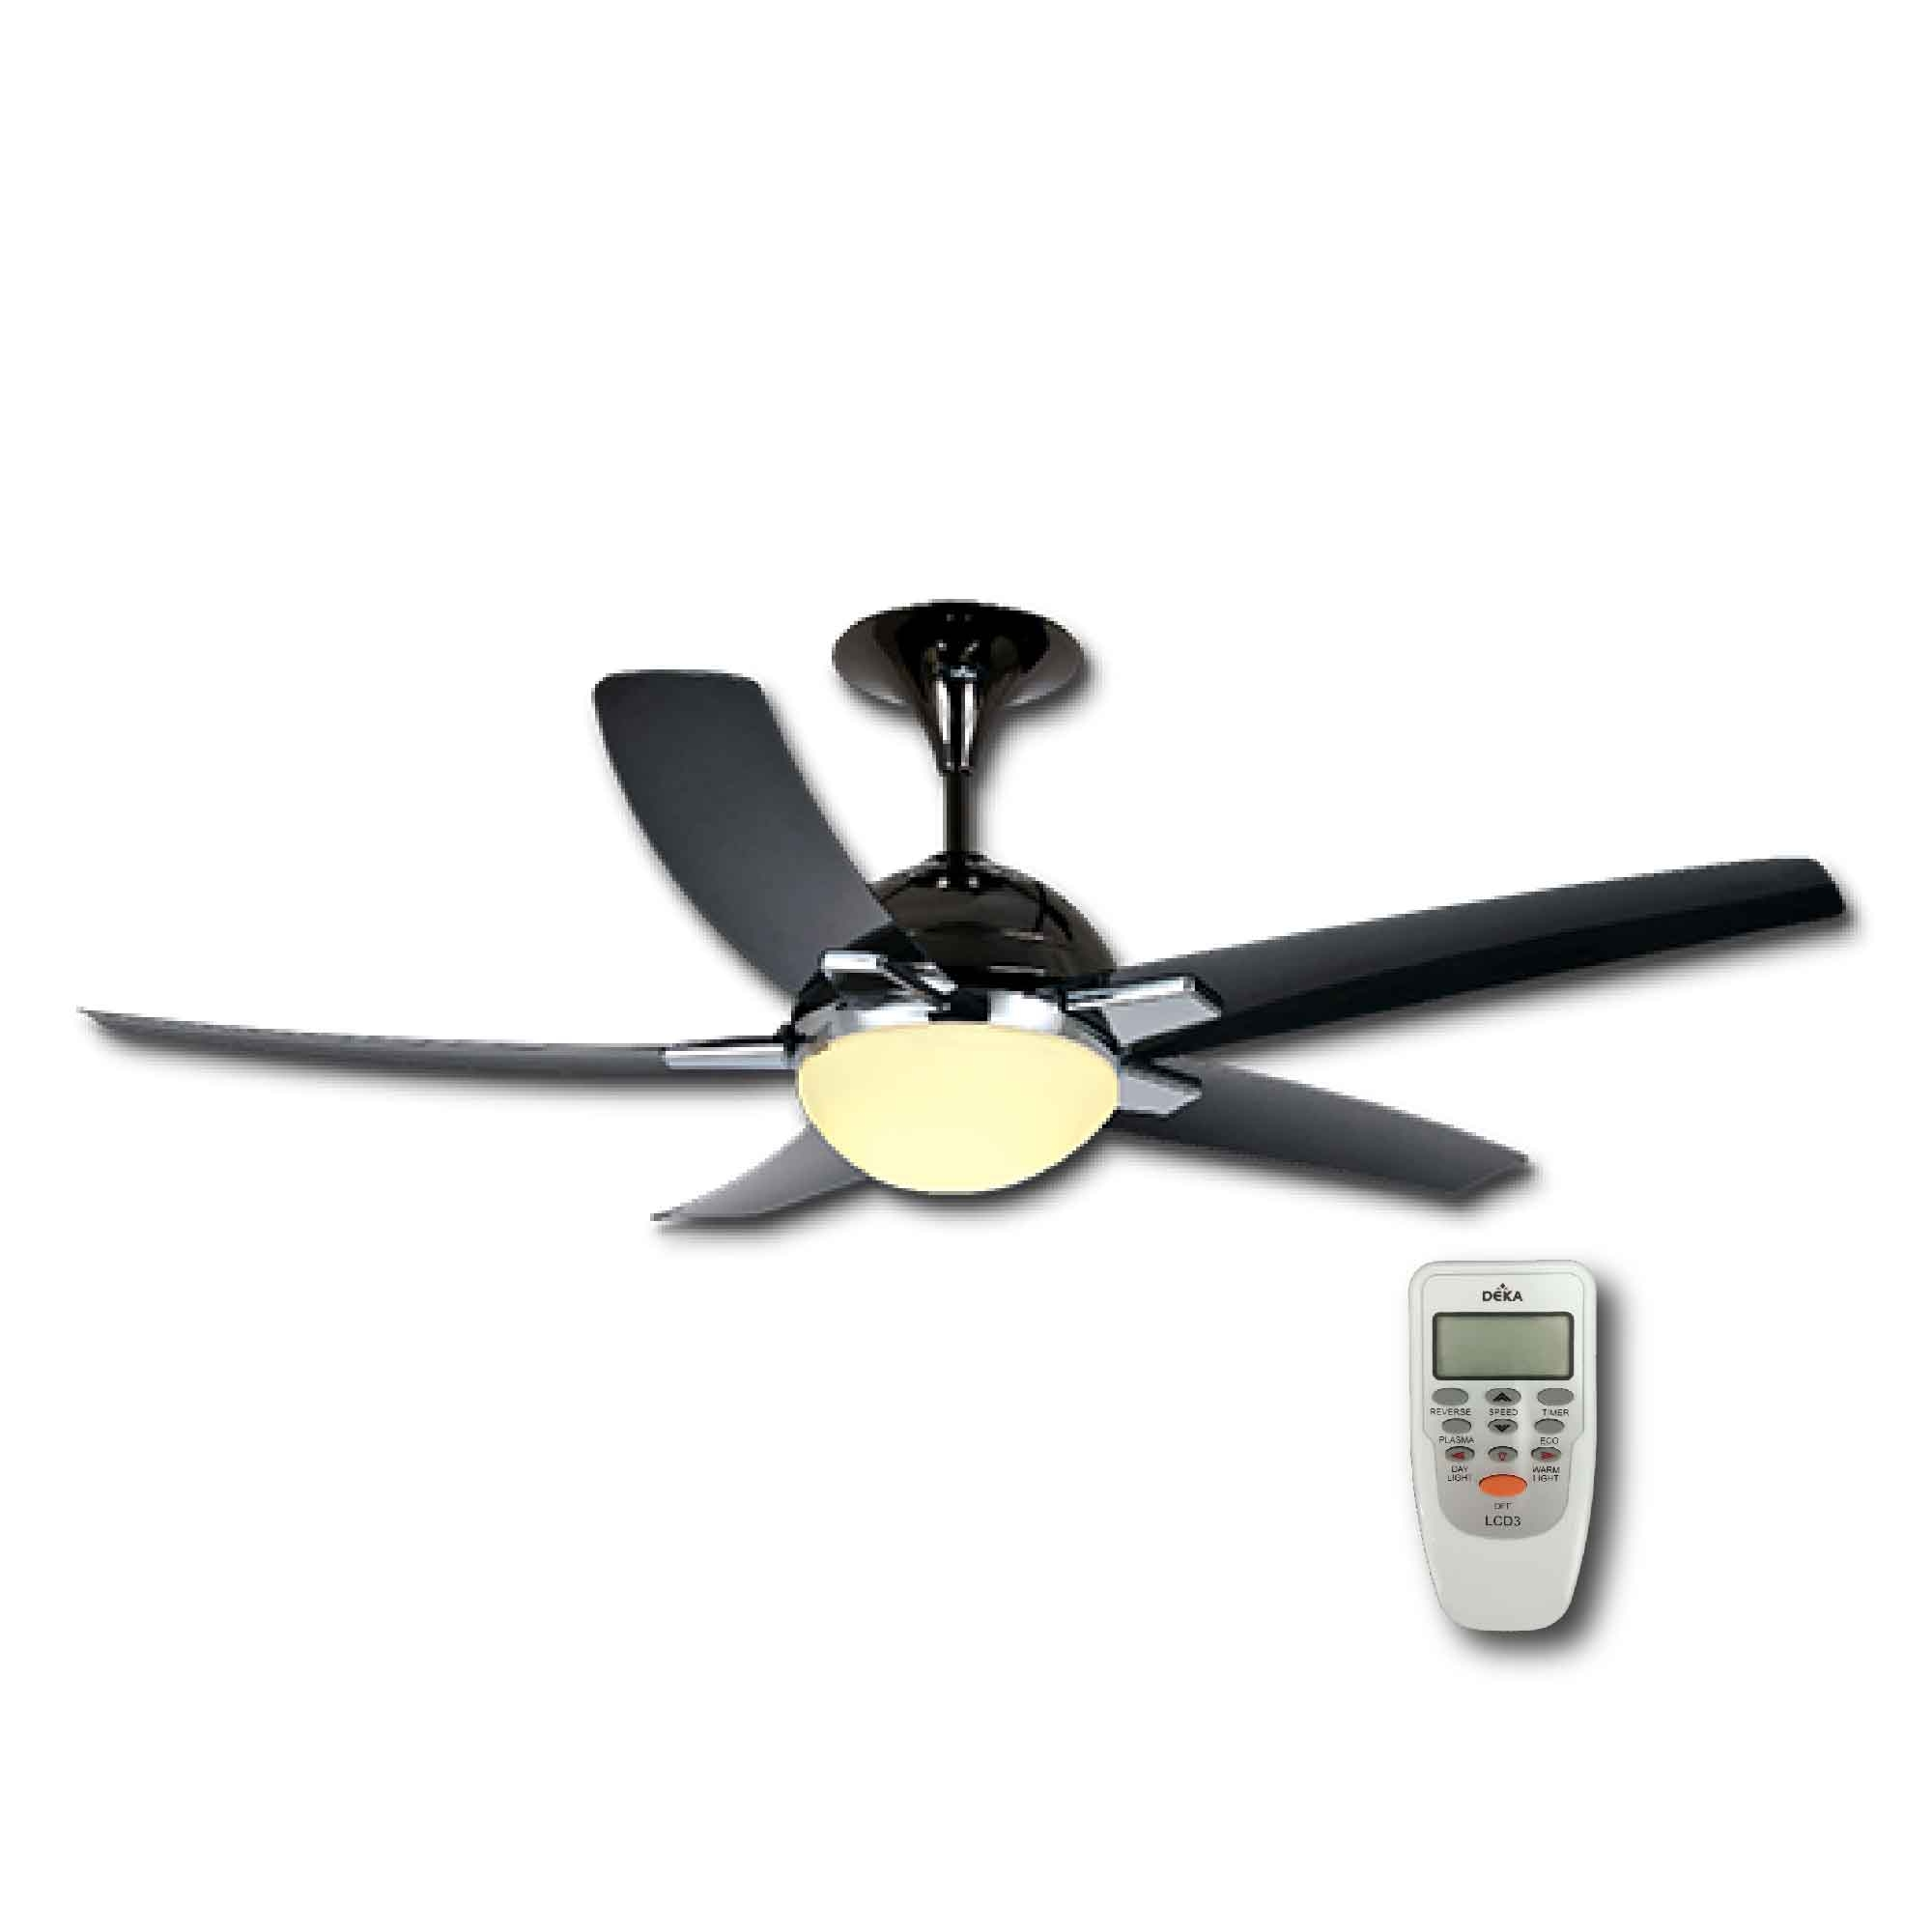 remote kendal lighting of control optica in photos fans and light indoor full fan dazzling pn with inspirations size ceiling lights